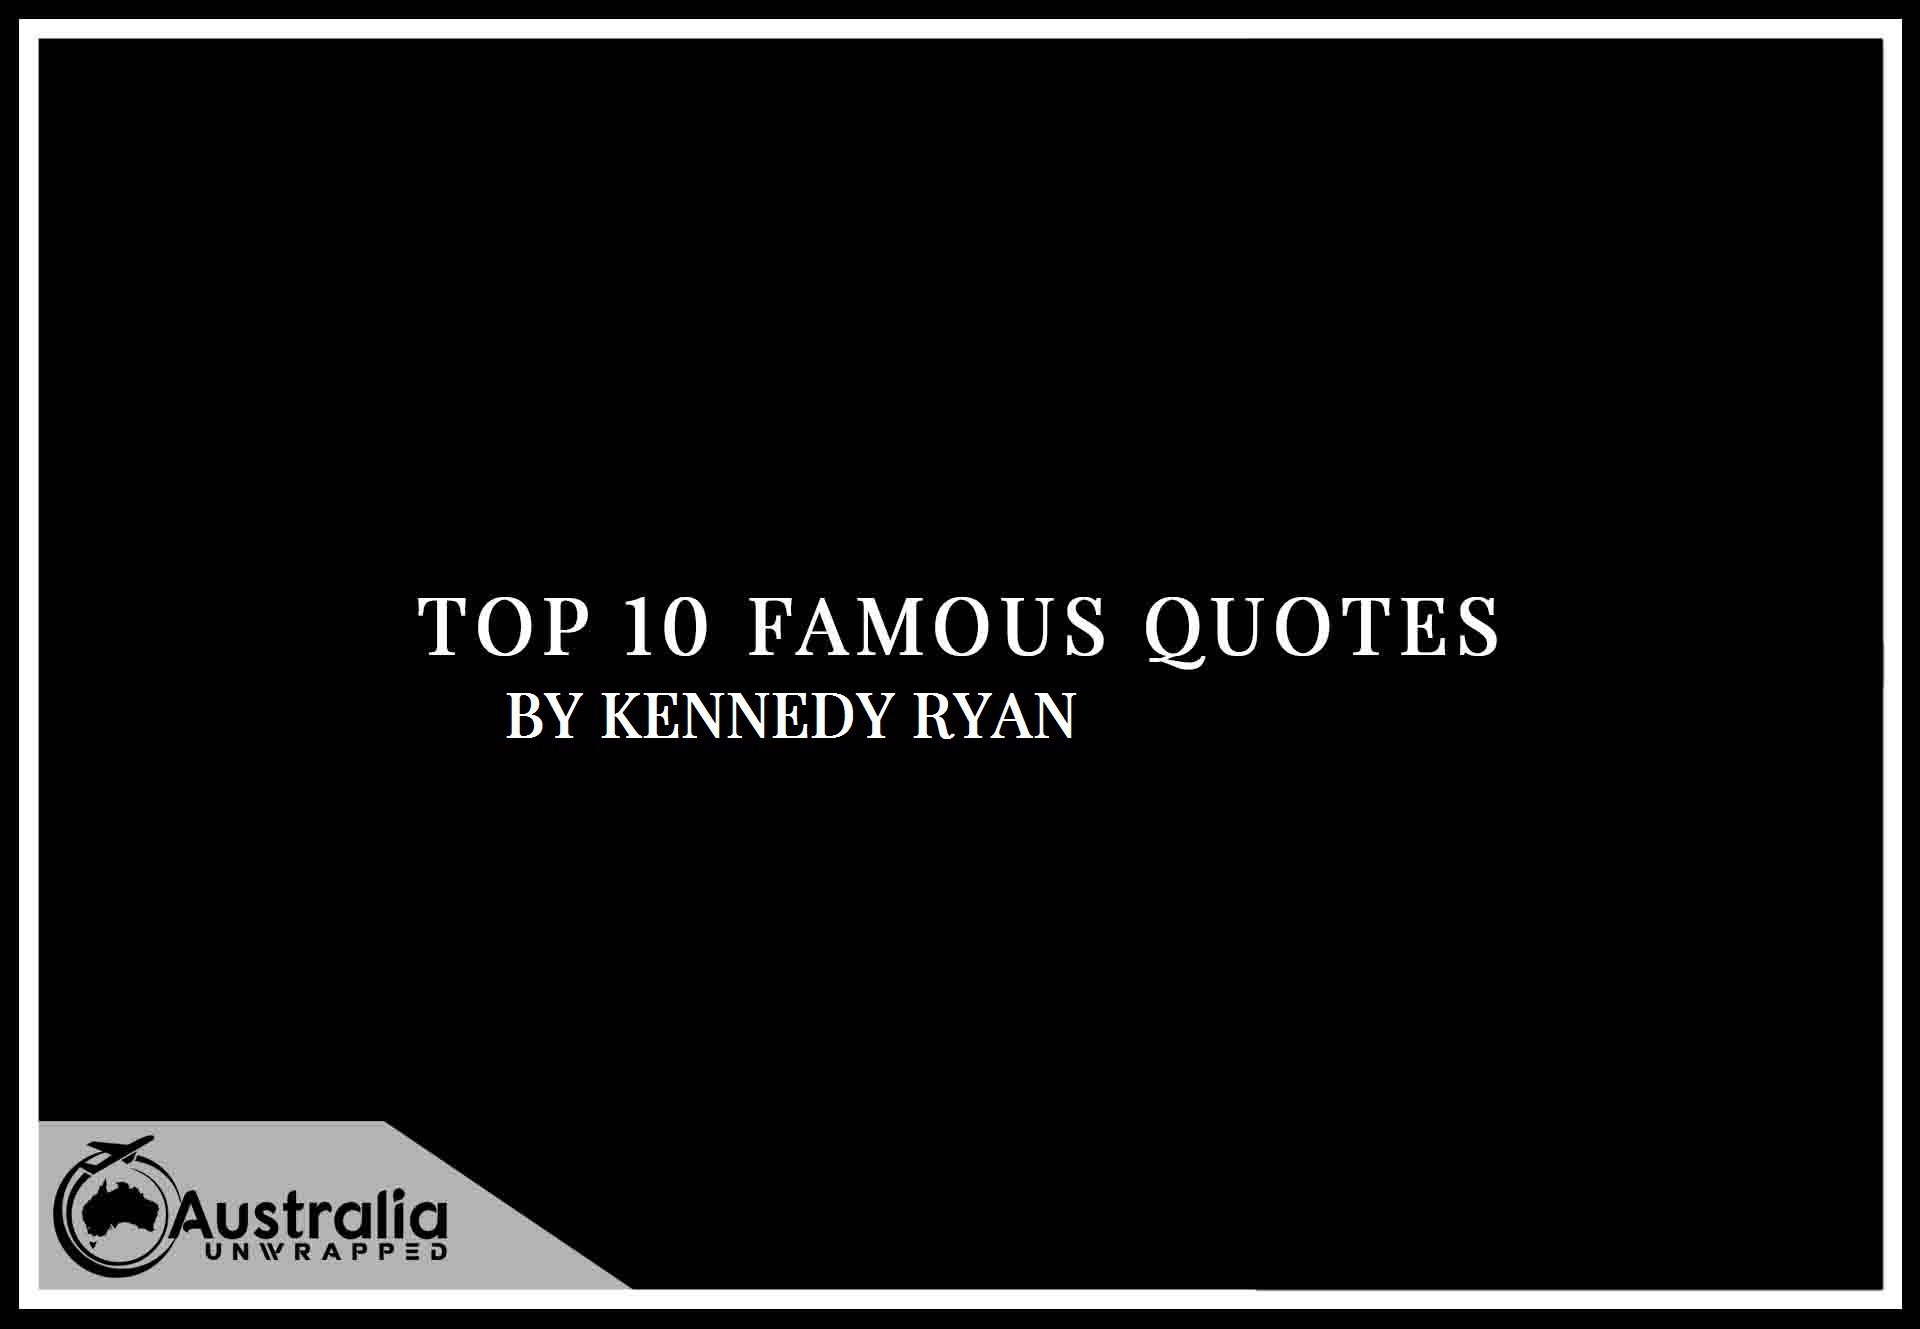 Kennedy Ryan's Top 10 Popular and Famous Quotes